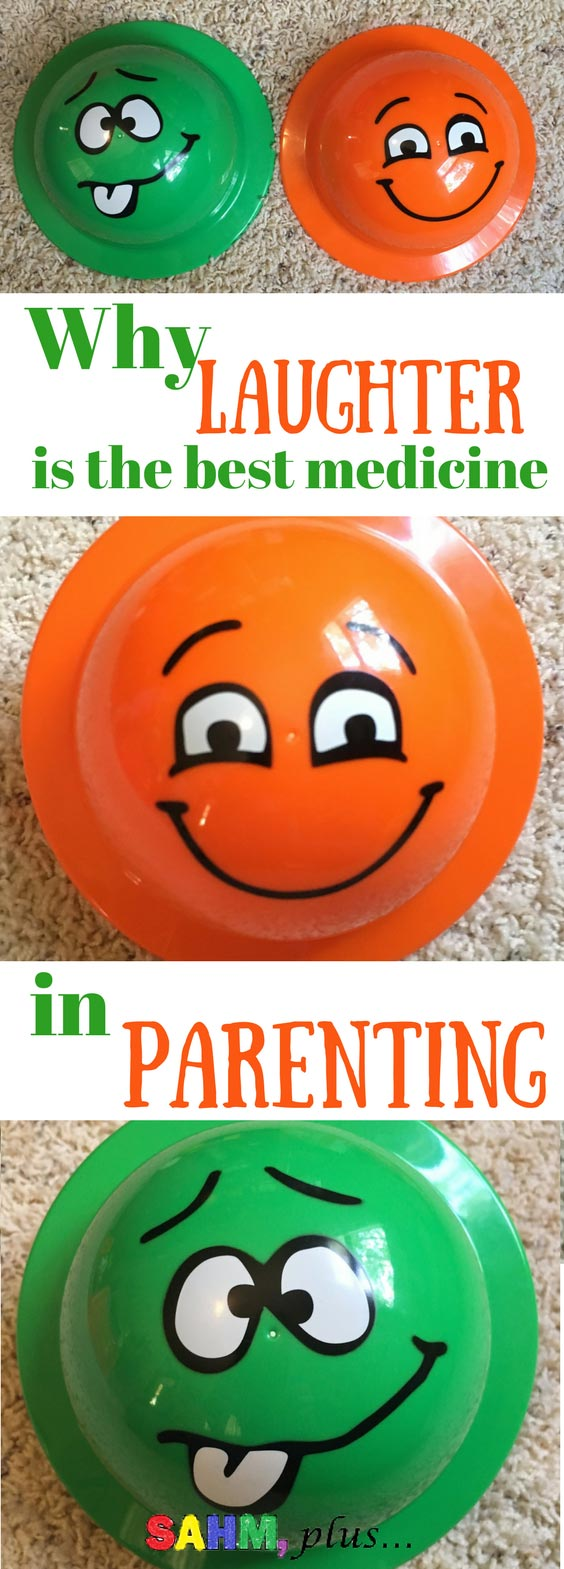 Lighten up mom! I know parenting is serious business, but laughter is the best medicine. Why and how to incorporate laughter into your parenting for a happier and healthier family!